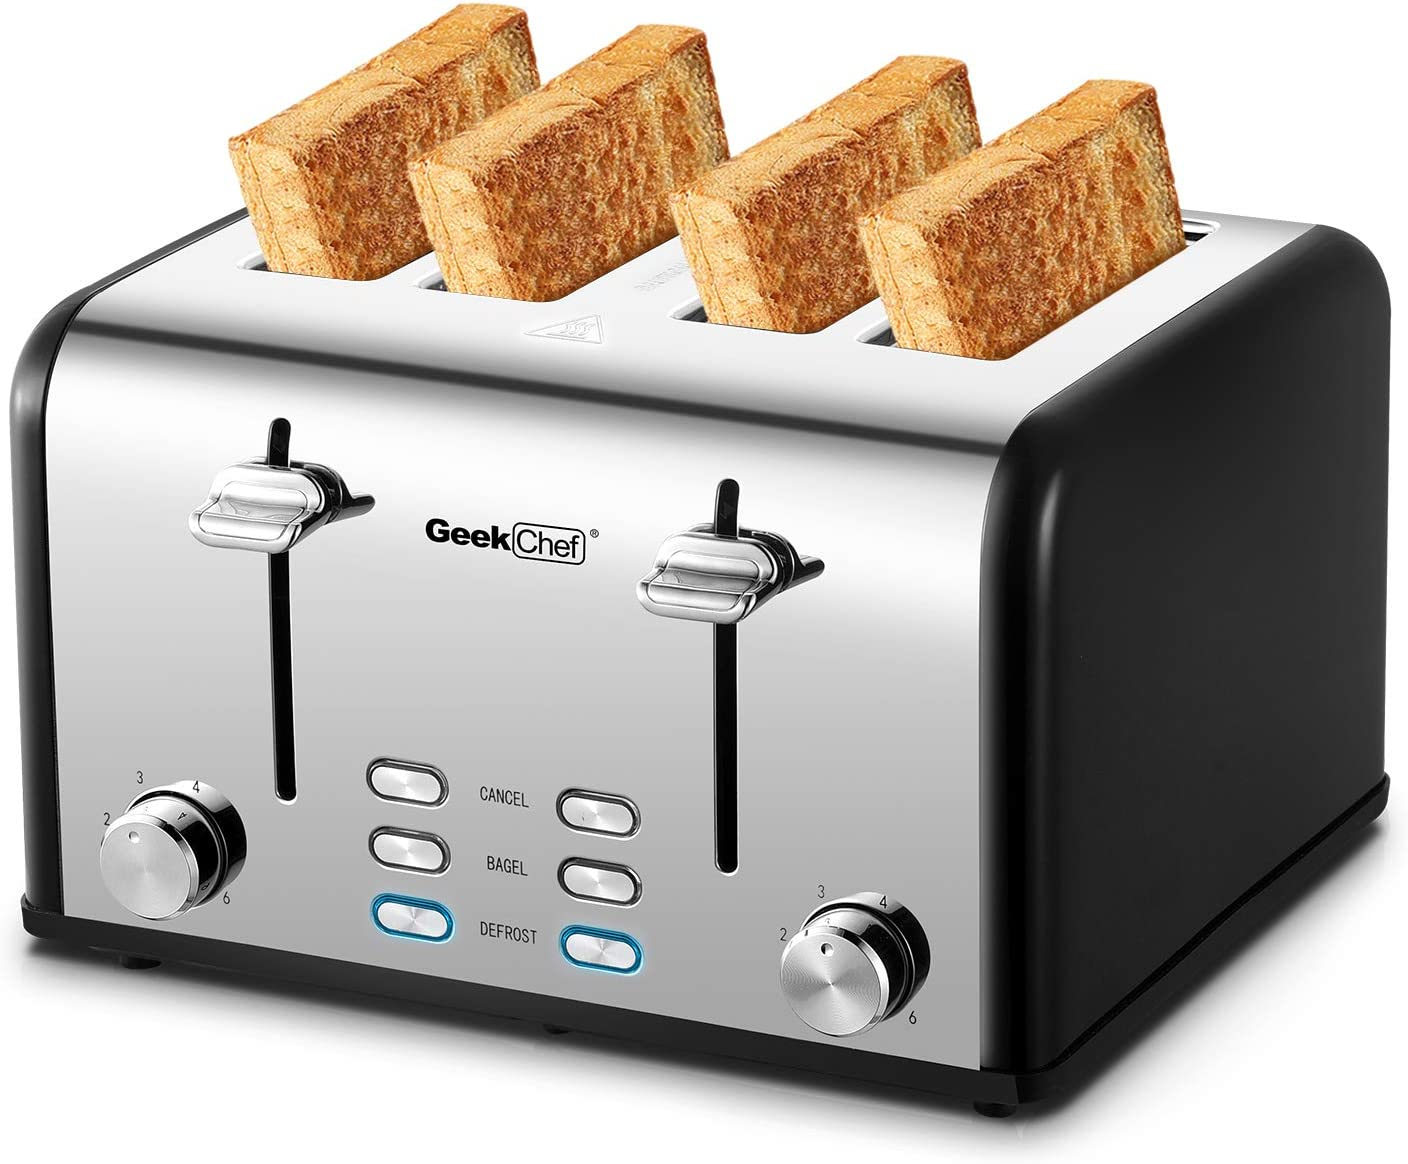 Free Amazon Promo Code 2020 for 4-Slice Toaster Stainless Steel